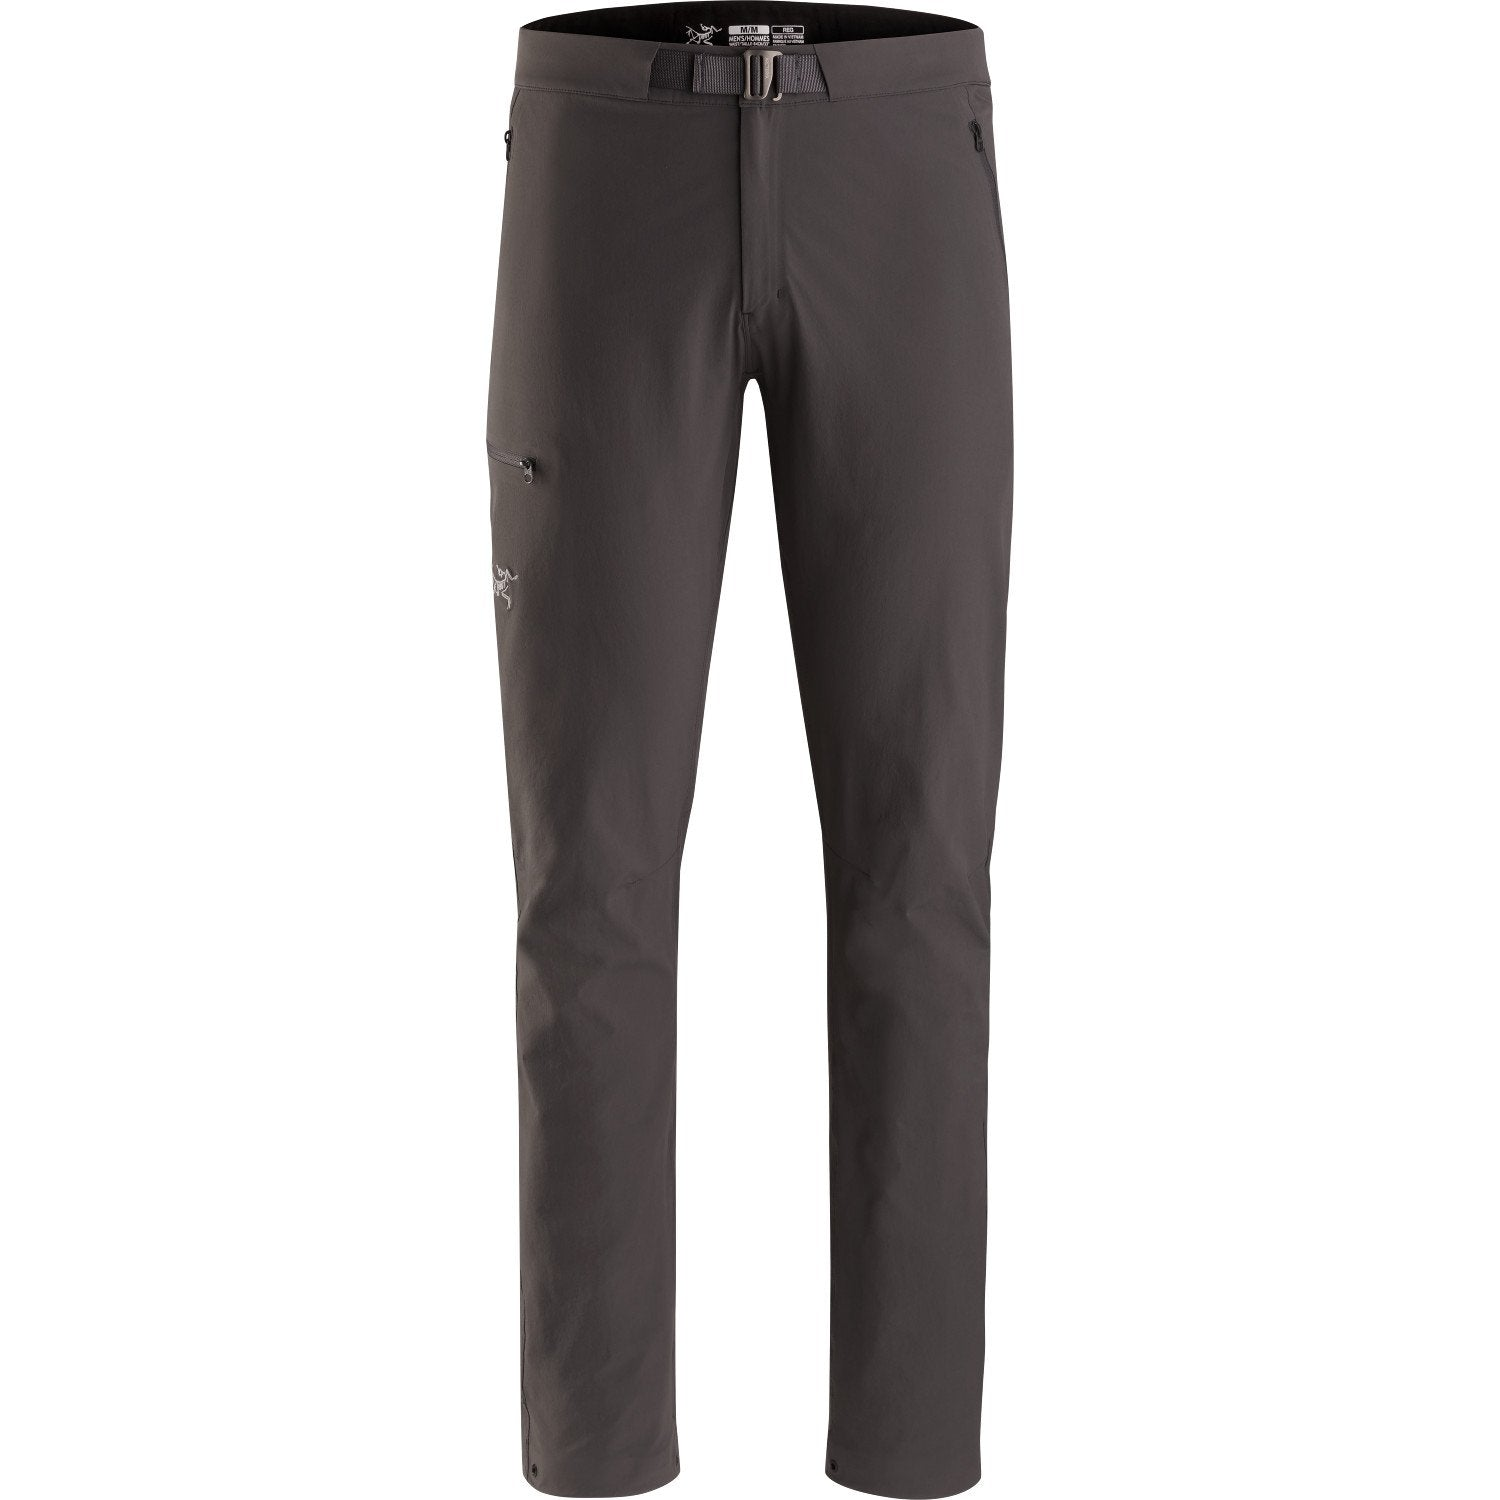 ArcTeryx Gamma LT Pant in Grey